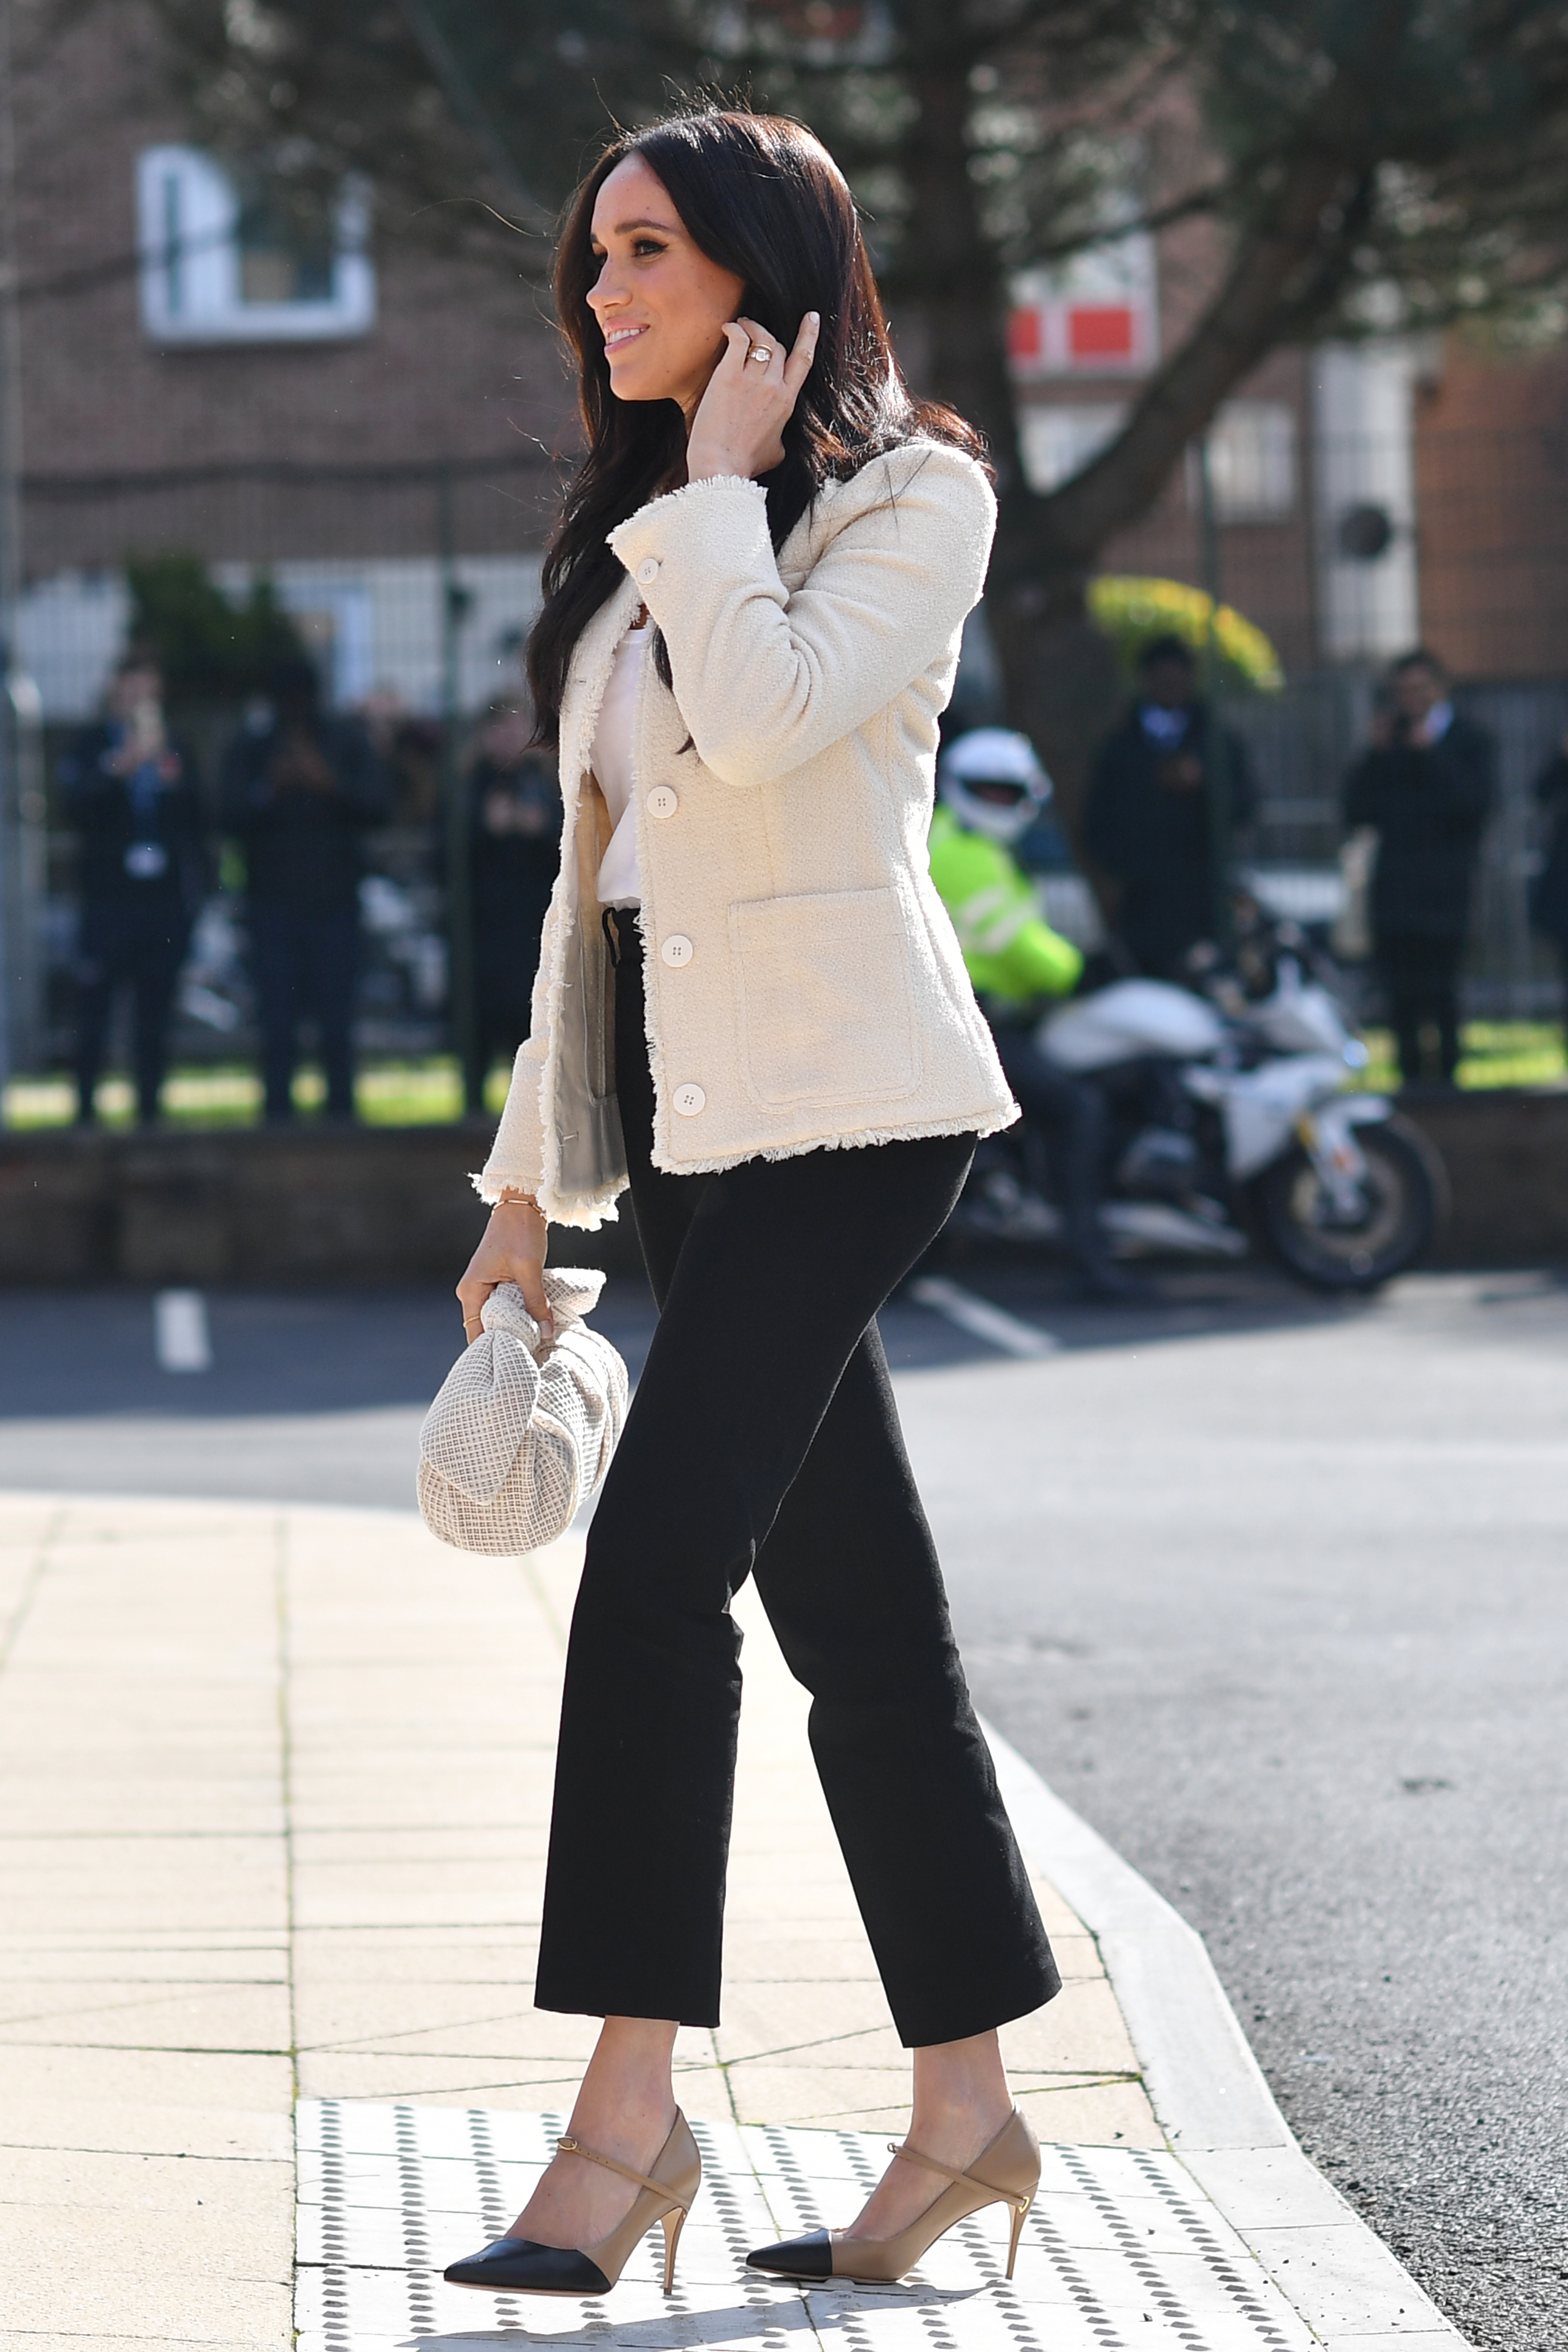 The Duchess of Sussex arrives at the Robert Clack Upper School in Dagenham, Essex, for a surprise visit to celebrate International Women's Day.